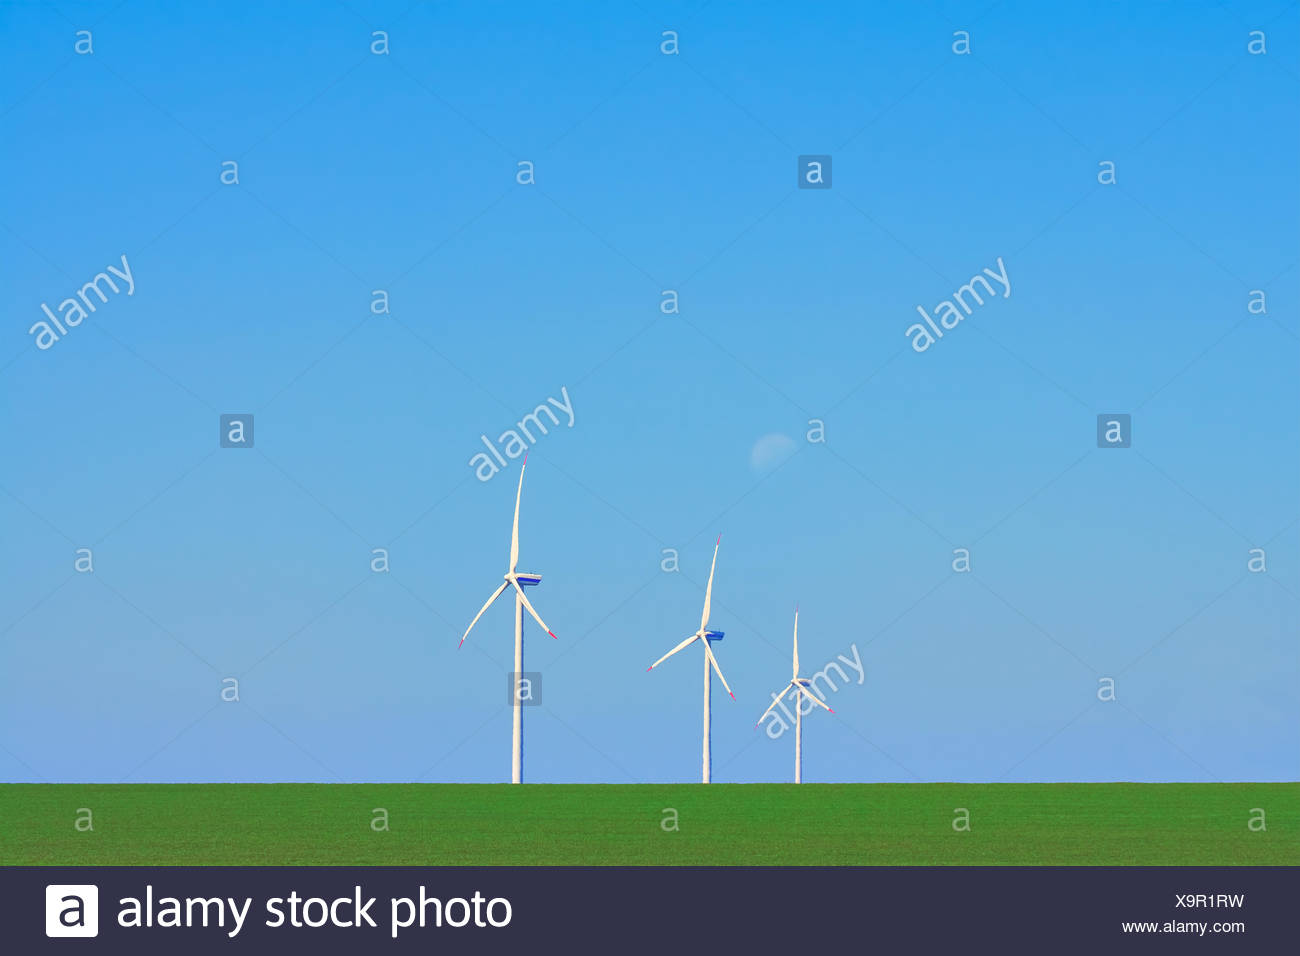 Auxiliary Power Stock Photos Images Alamy 25 Floppy Drive Wind Generator Construction Details Turbines In Bulgaria Image